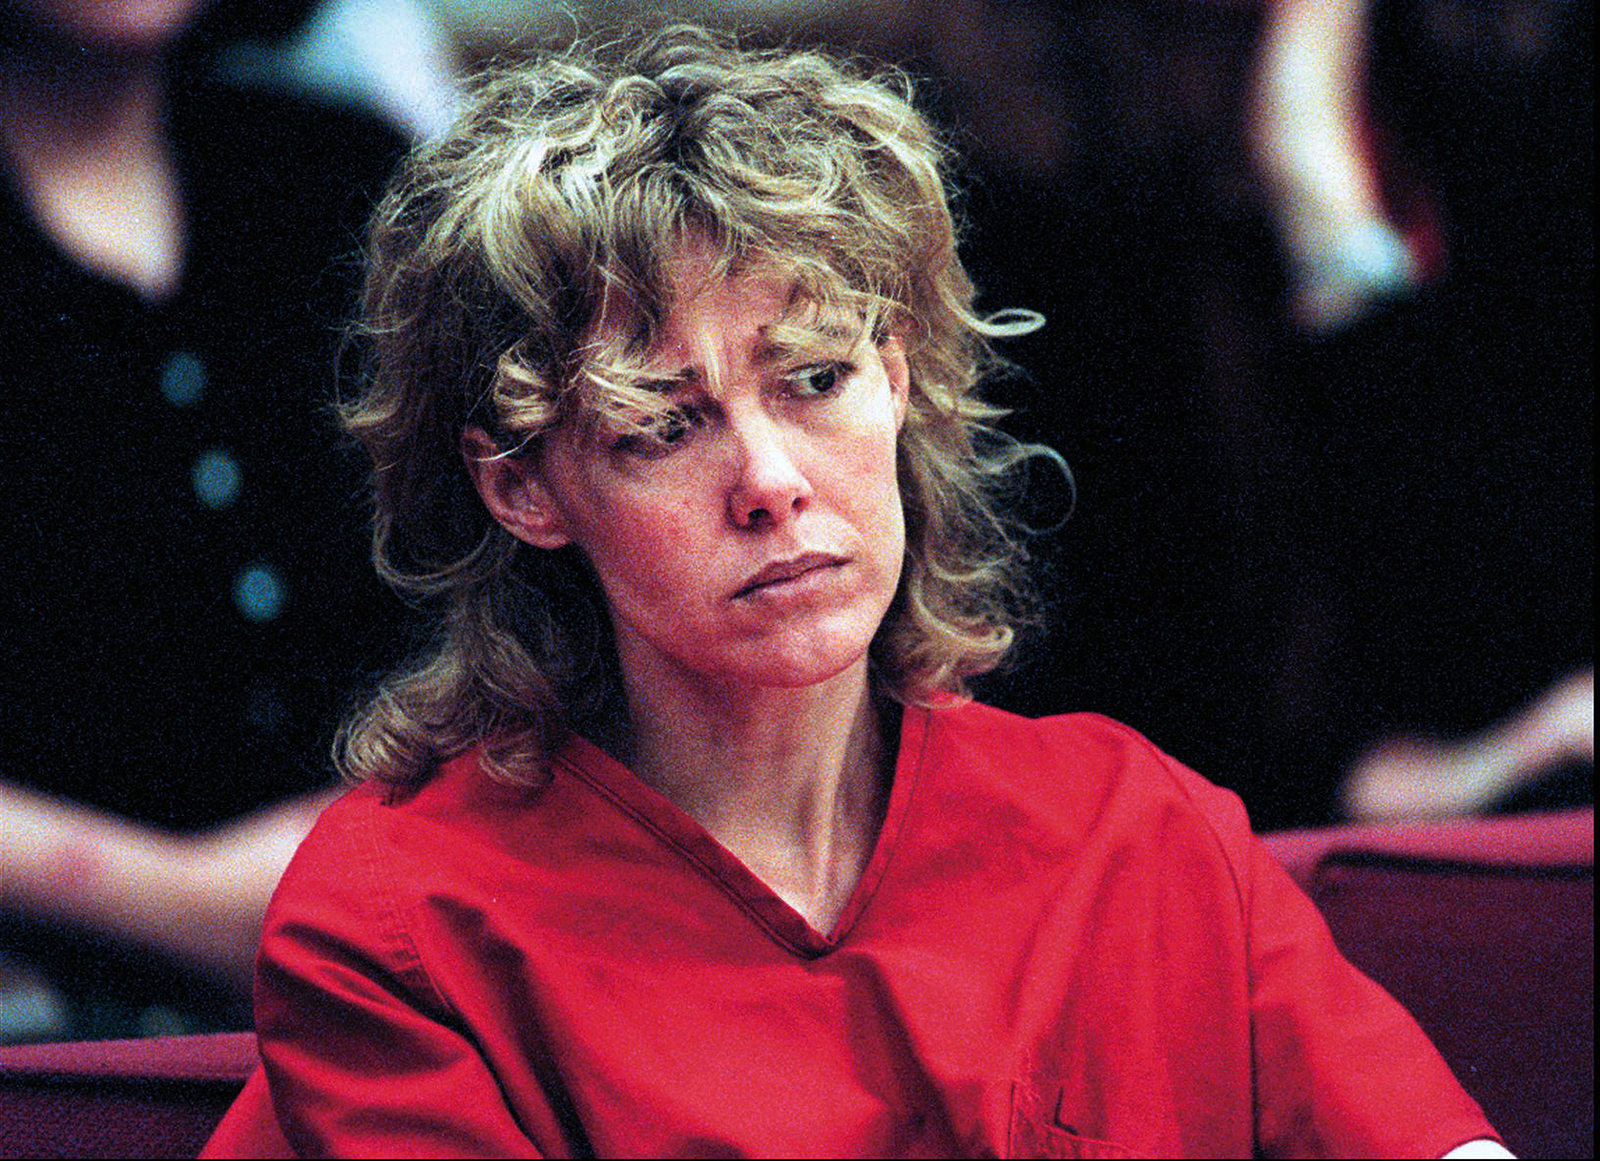 Mary Kay Letourneau, who was convicted of raping 13-year-old student she later married, has died of cancer